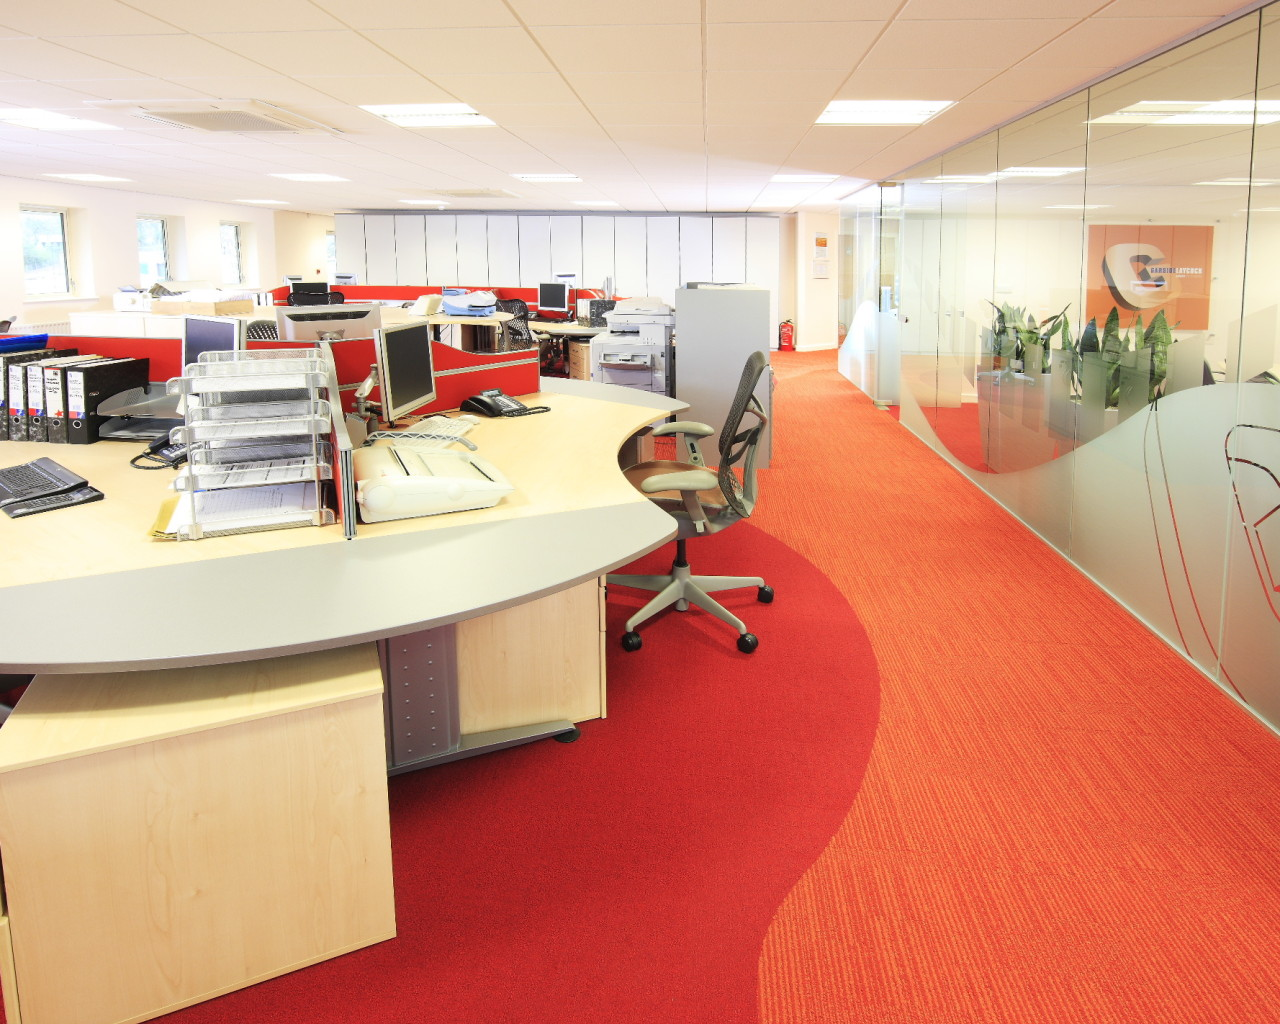 Corporate office design Stockport, Bury, Oldham, Rochdale, Burnley, Salford